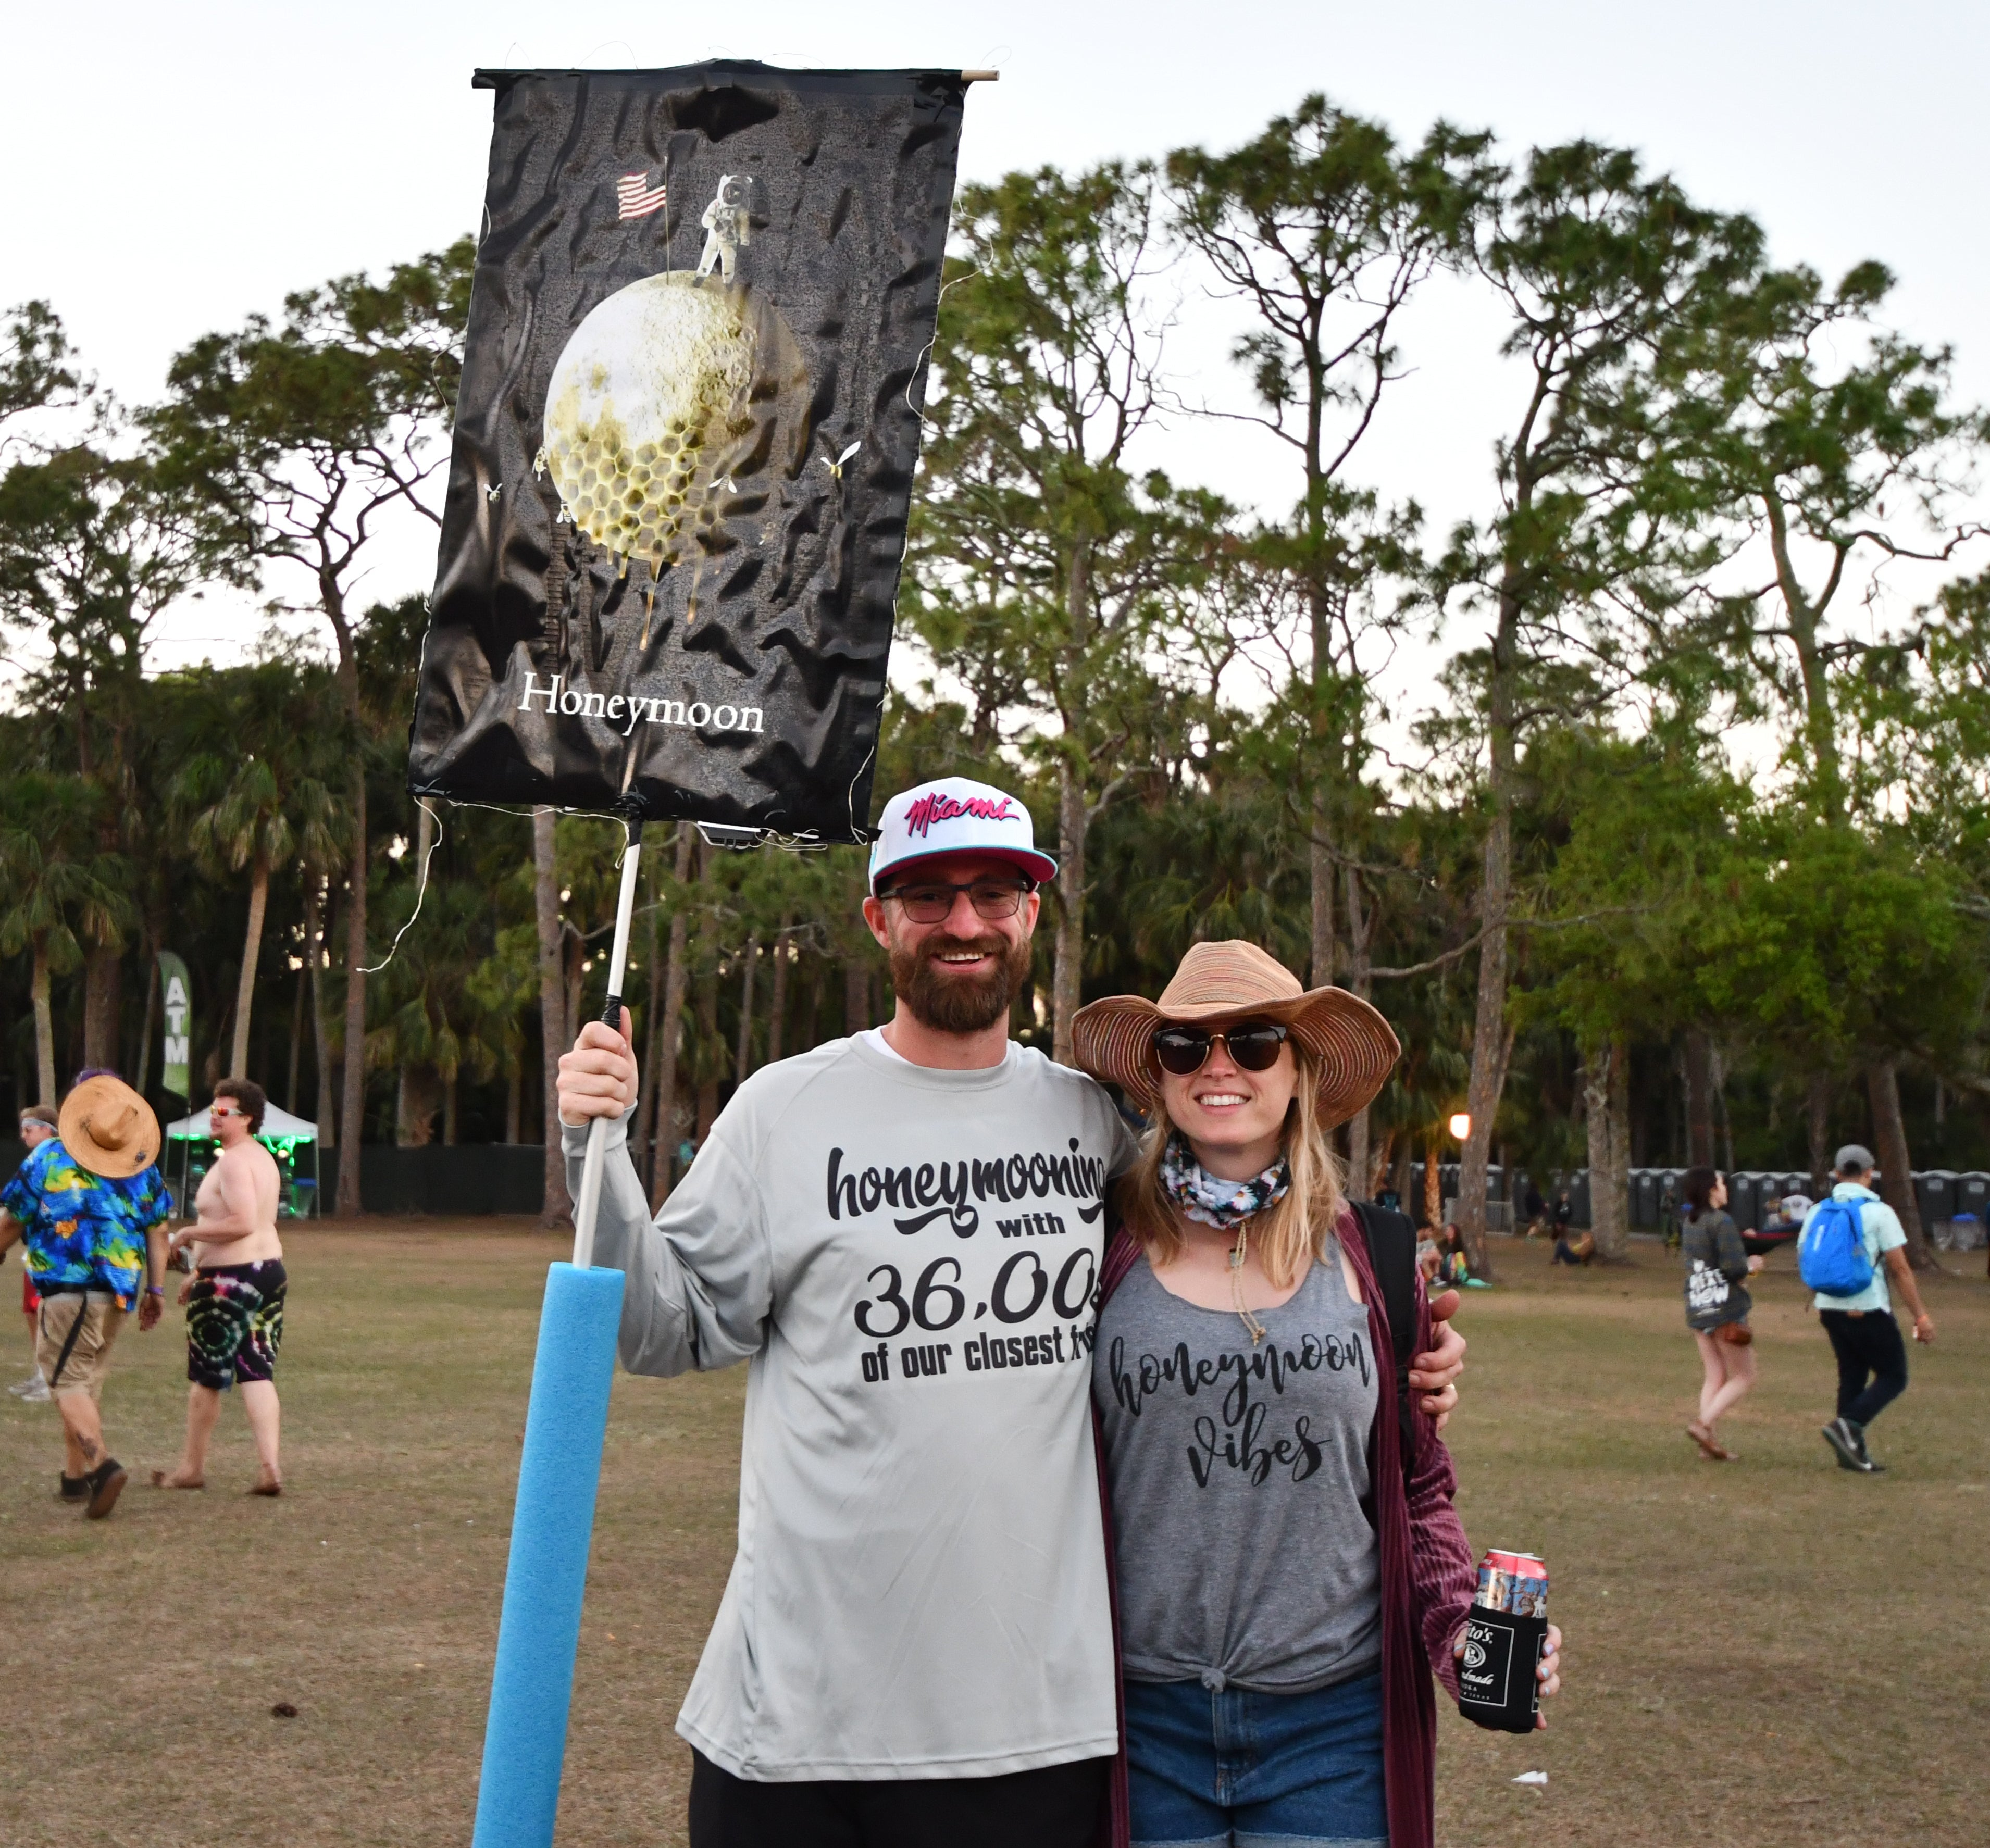 dcfe21807c Kendal   Craig from Tampa decided to celebrate their honeymoon at  Okeechobee 2018. What a great way to enjoy all the music you love with all  the people you ...